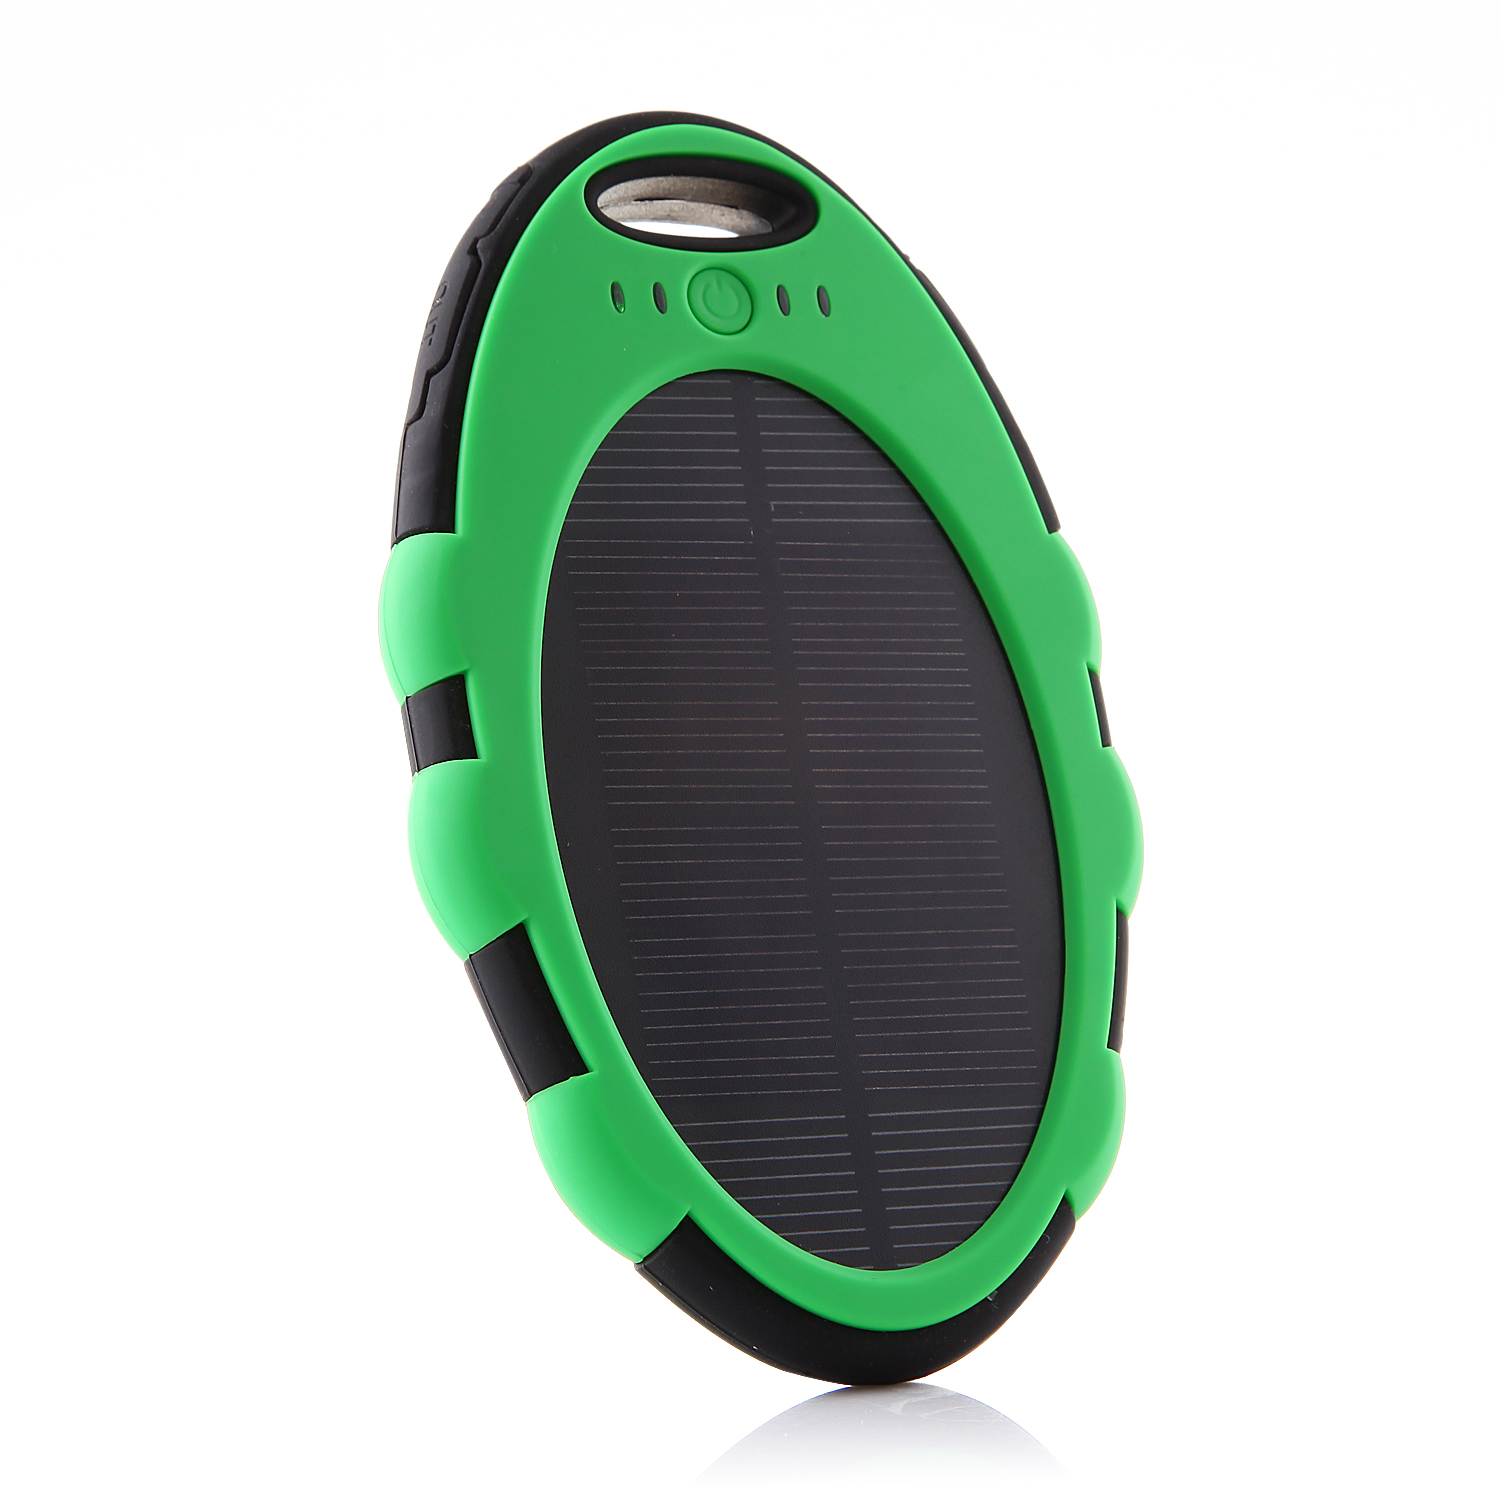 5000mAh Oval Shaped Power Bank Solar Charger for iPhone iPad Smartphone Green